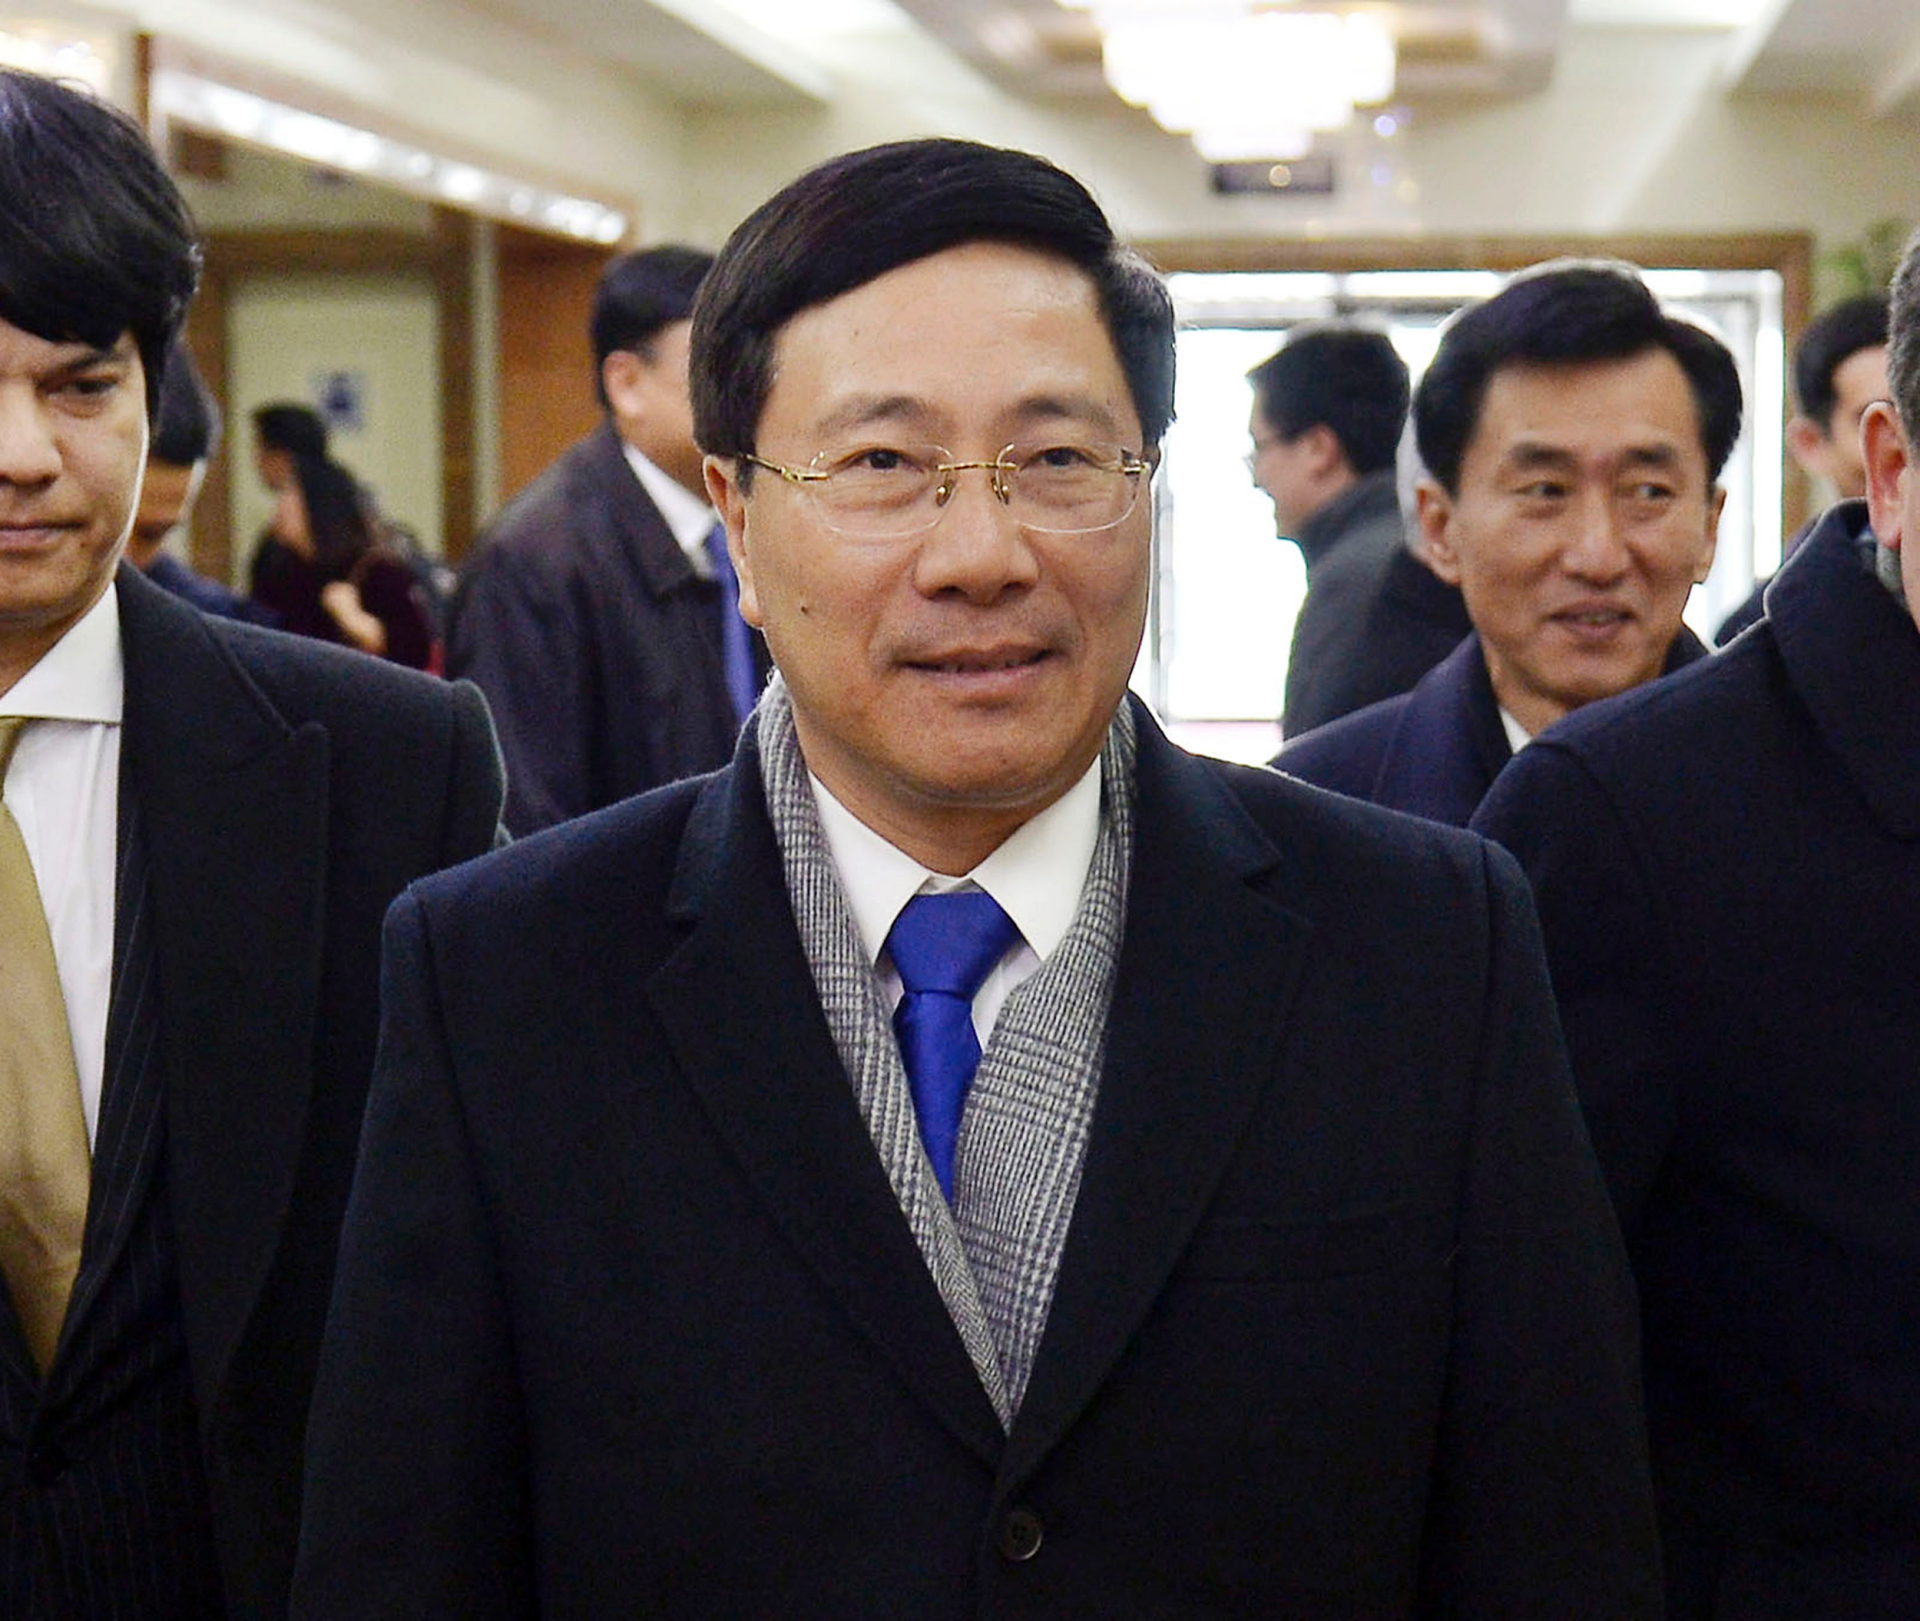 Vietnam foreign minister arrives in North Korea